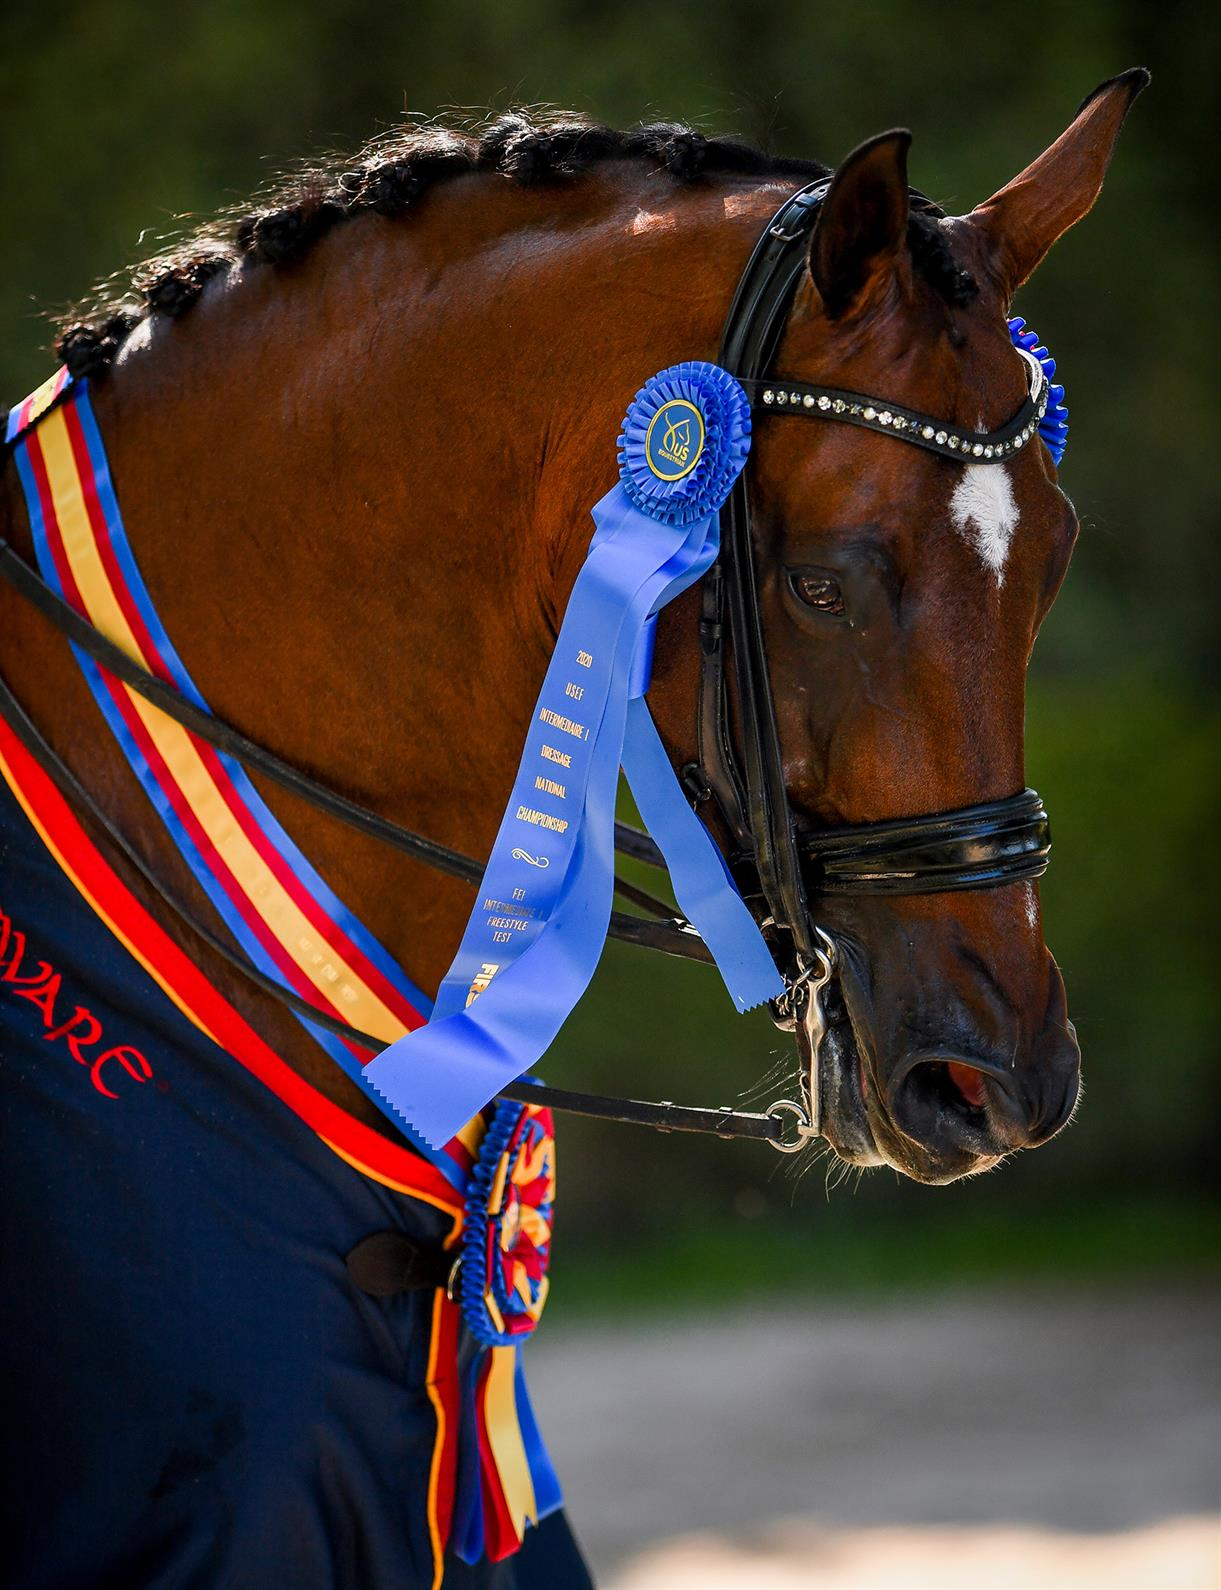 Headshot of Sonnenberg's Everdance, a bay horse, with champion ribbons on his bridle and around his neck